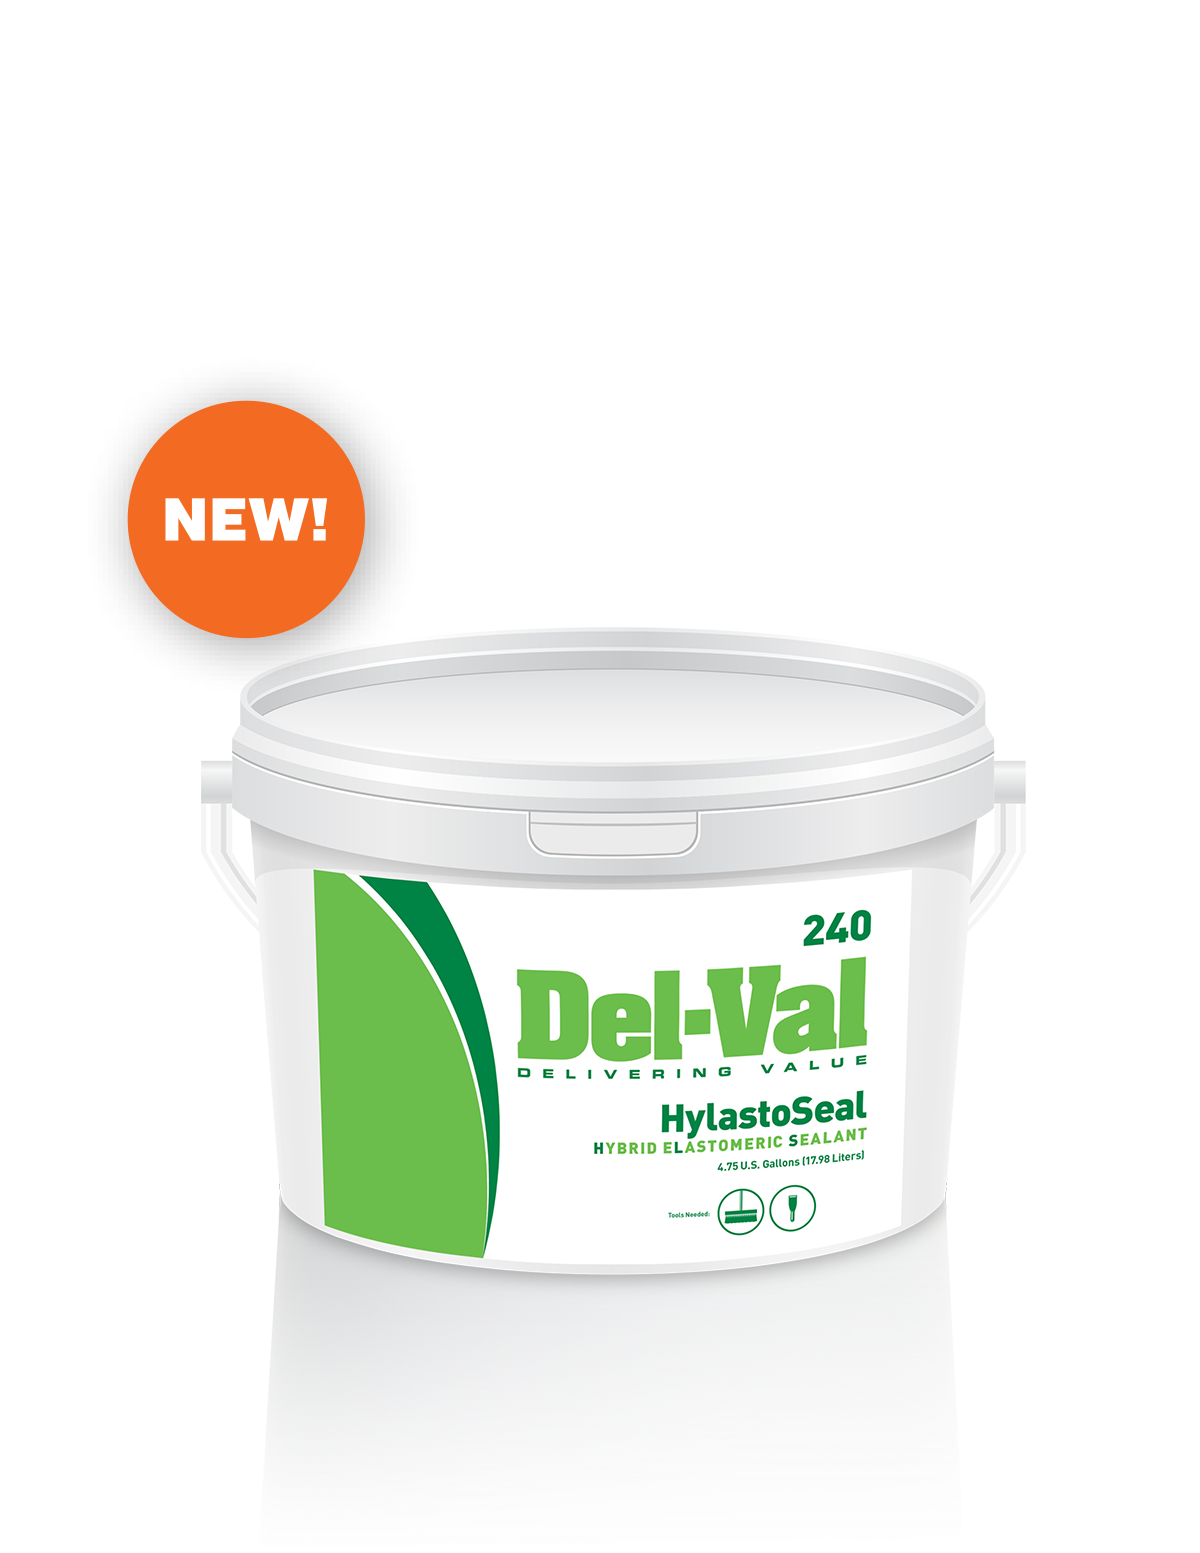 Image of Del-Val 240 HyLastoSeal (Hybrid Elastomeric Sealant) - 3 Gallon Bucket